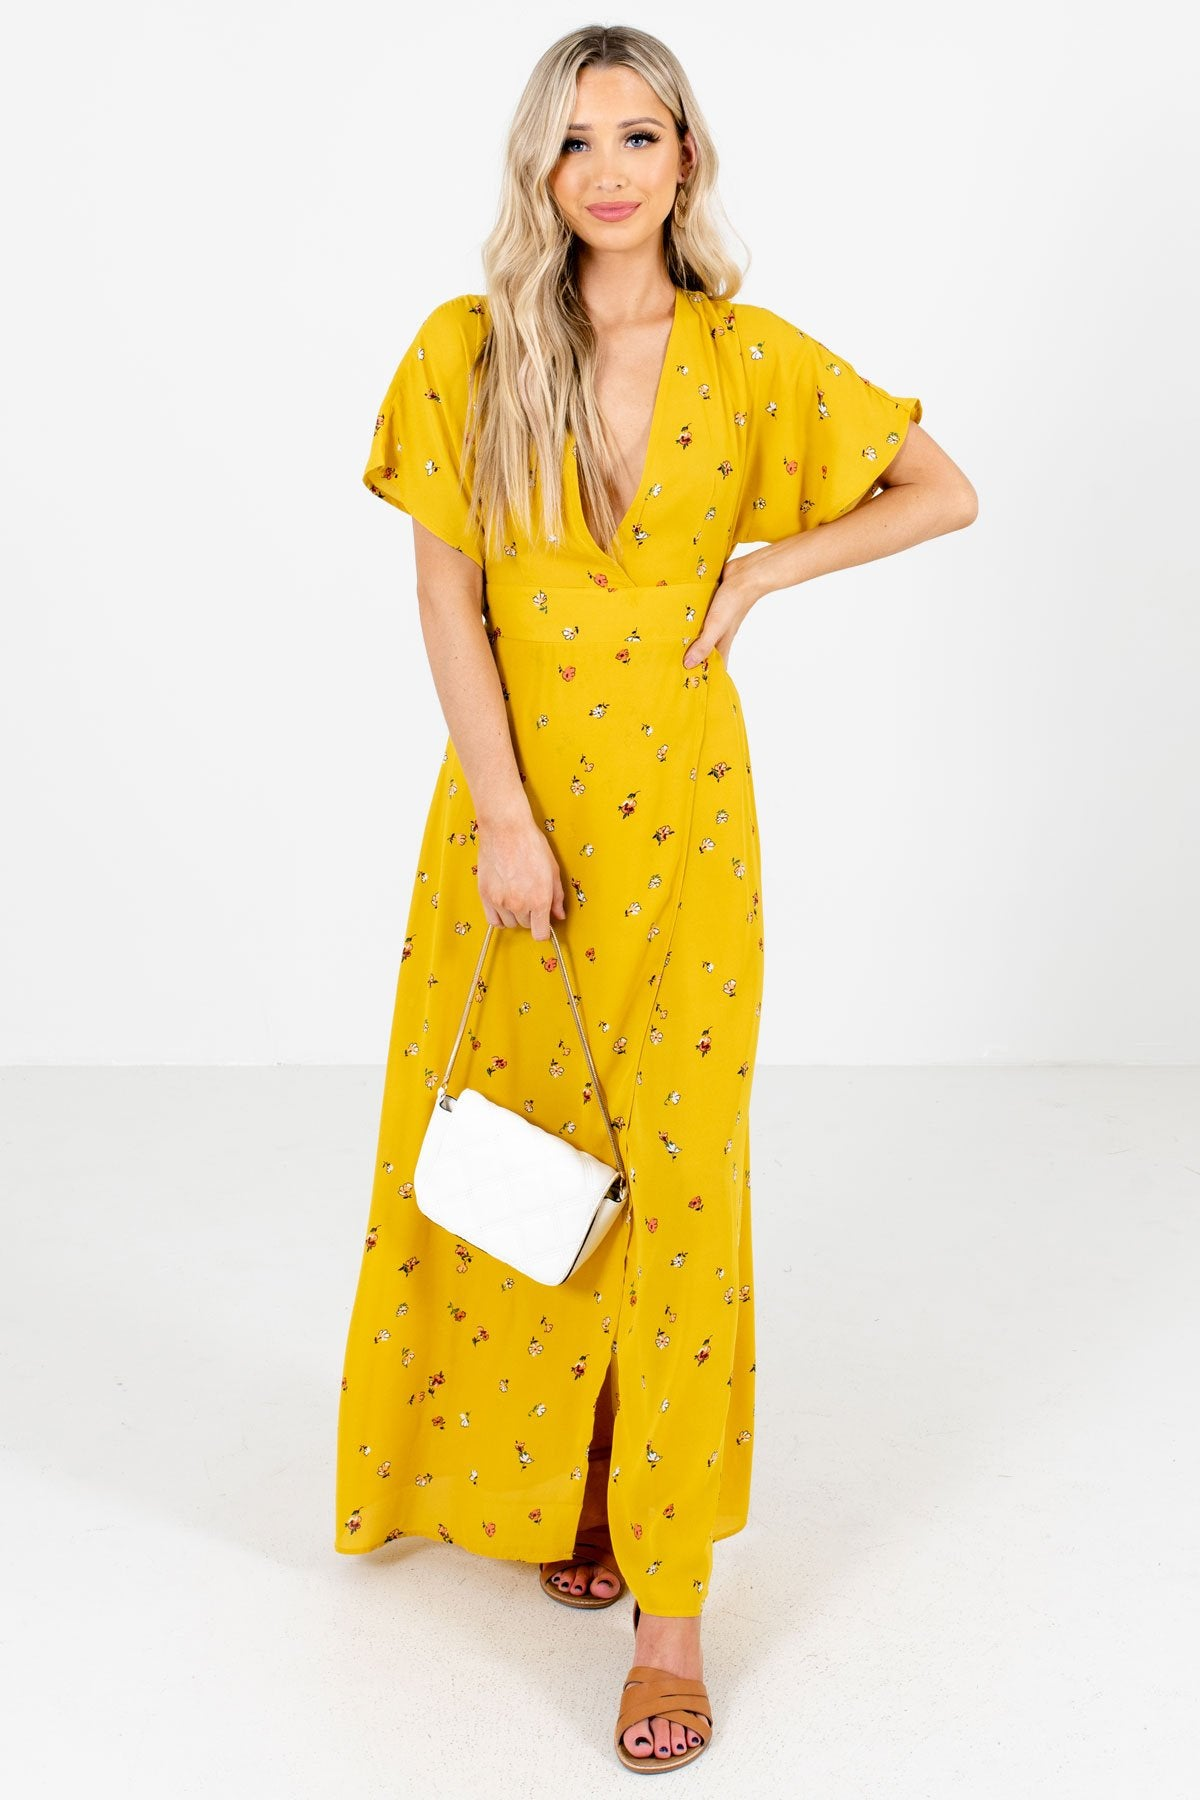 Mustard Yellow Faux Wrap Style Boutique Maxi Dresses for Women